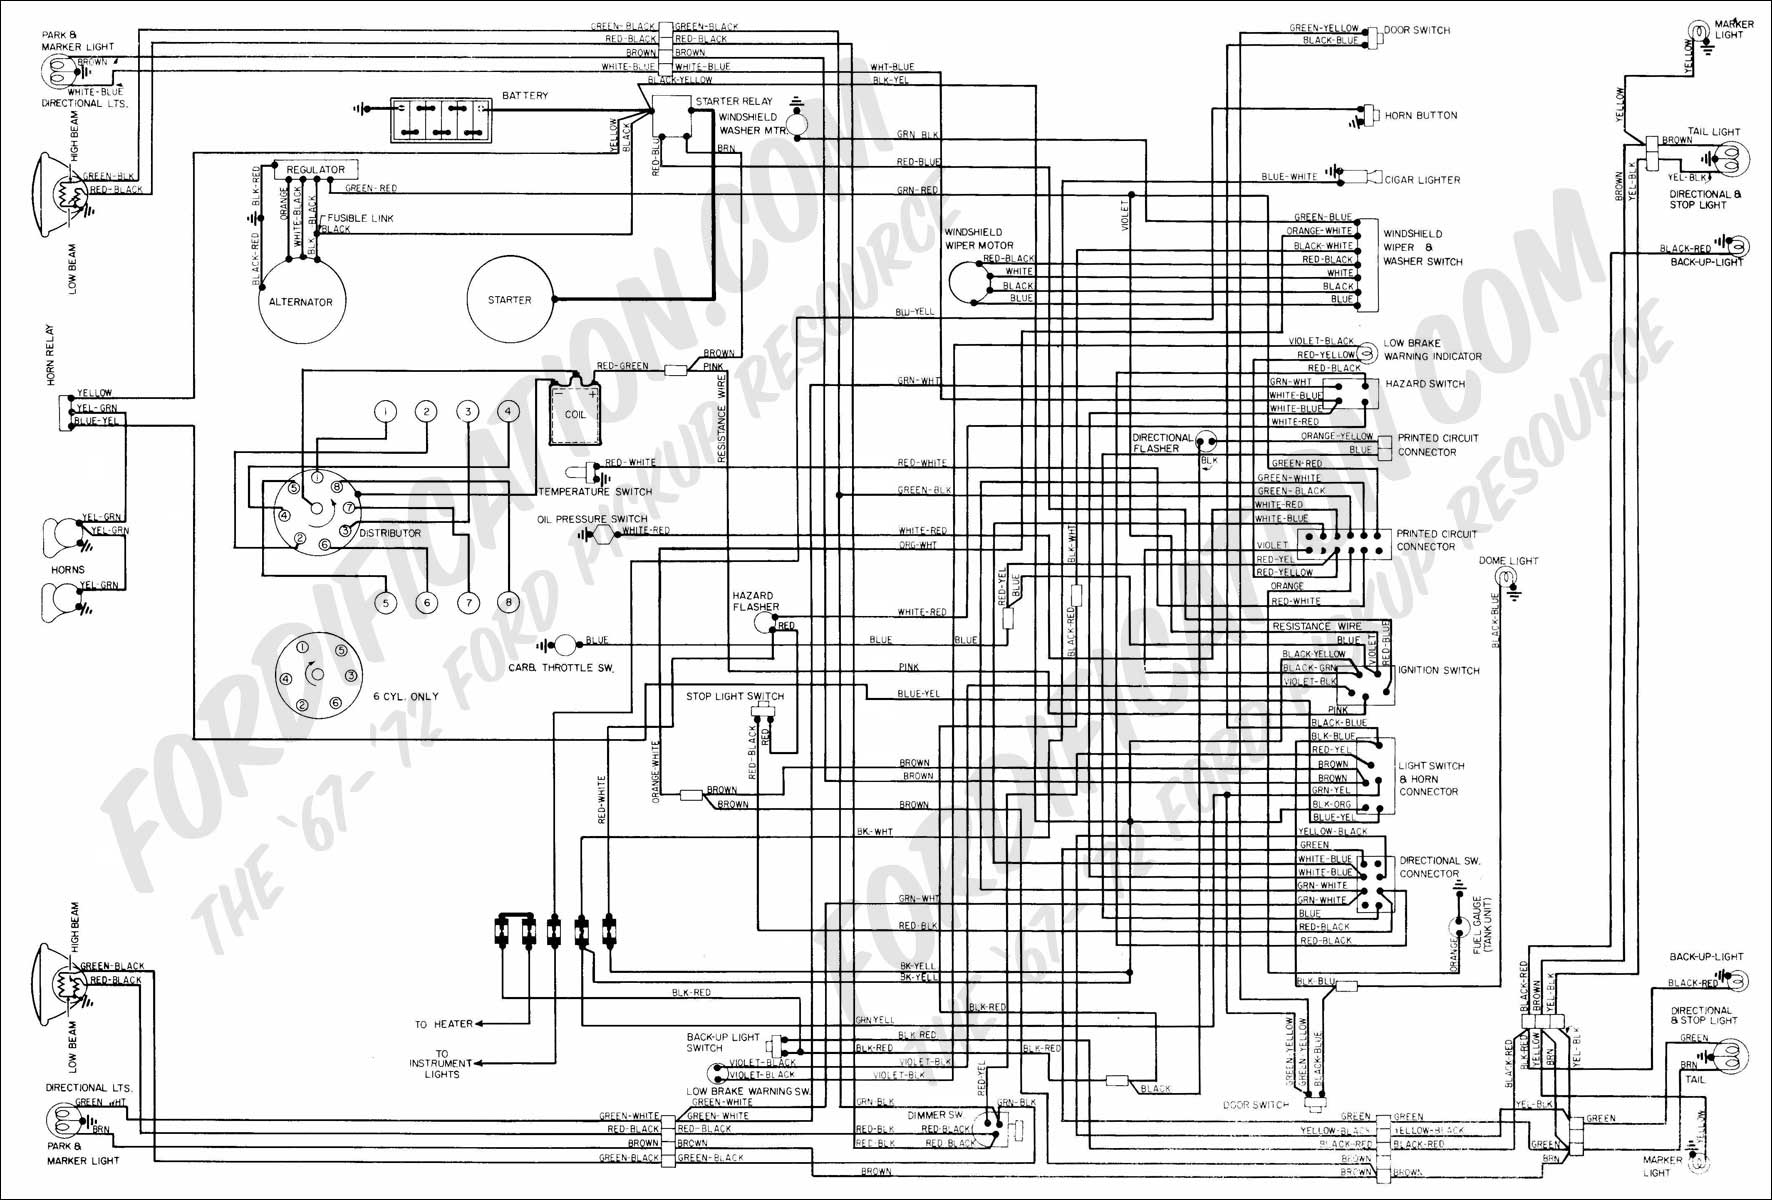 wiring diagram 72_quick 2003 ford f350 wiring diagram 2013 ford f350 wiring diagram \u2022 free 2003 ford truck fuse diagram at fashall.co